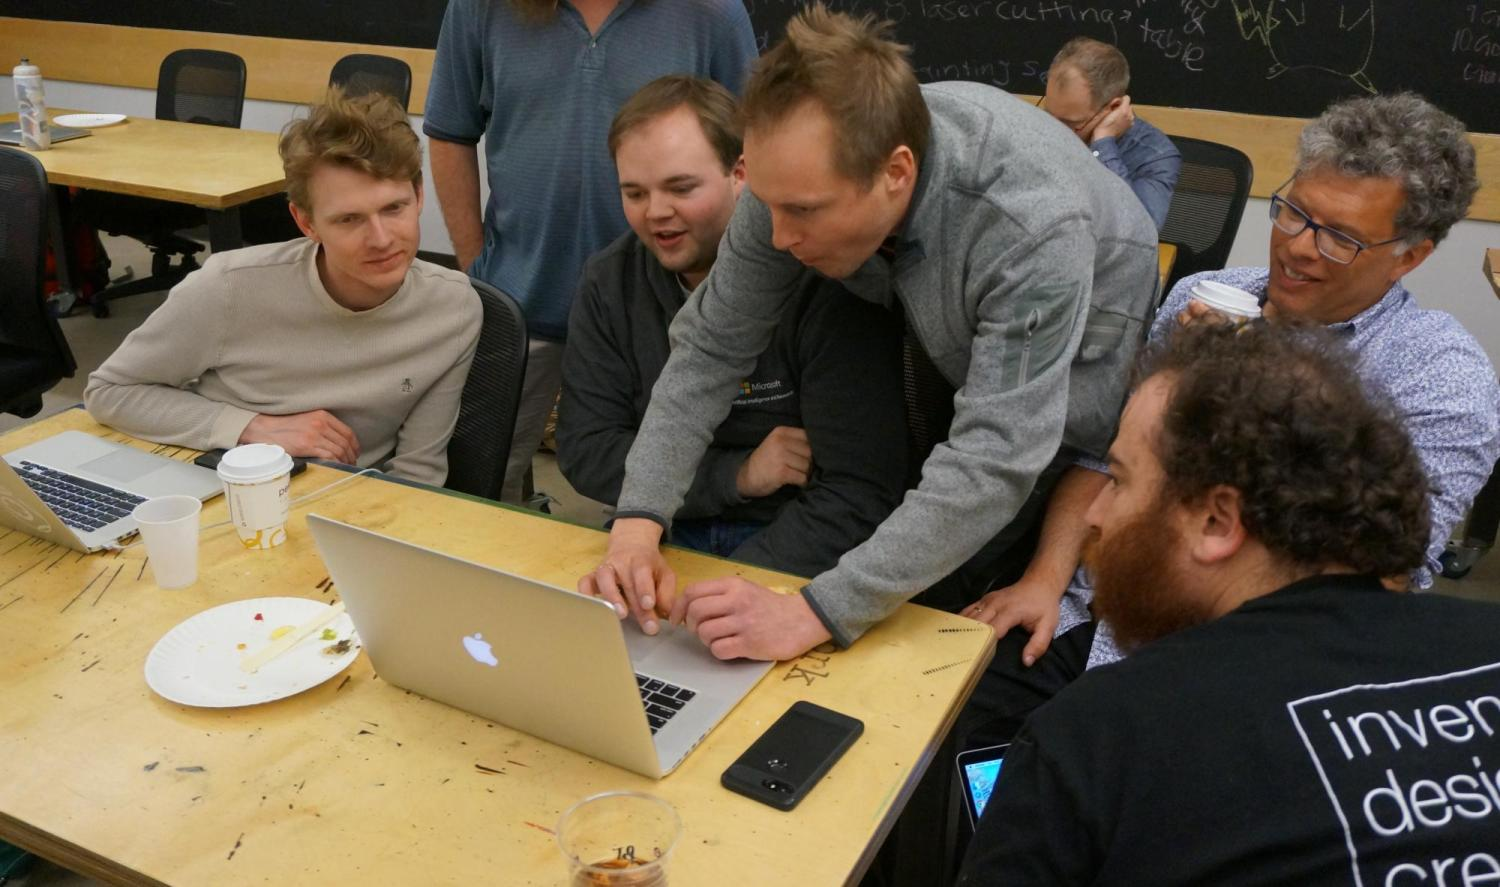 Tom Ball demonstrates MakeCode on his computer,  surrounded by workshop participants.